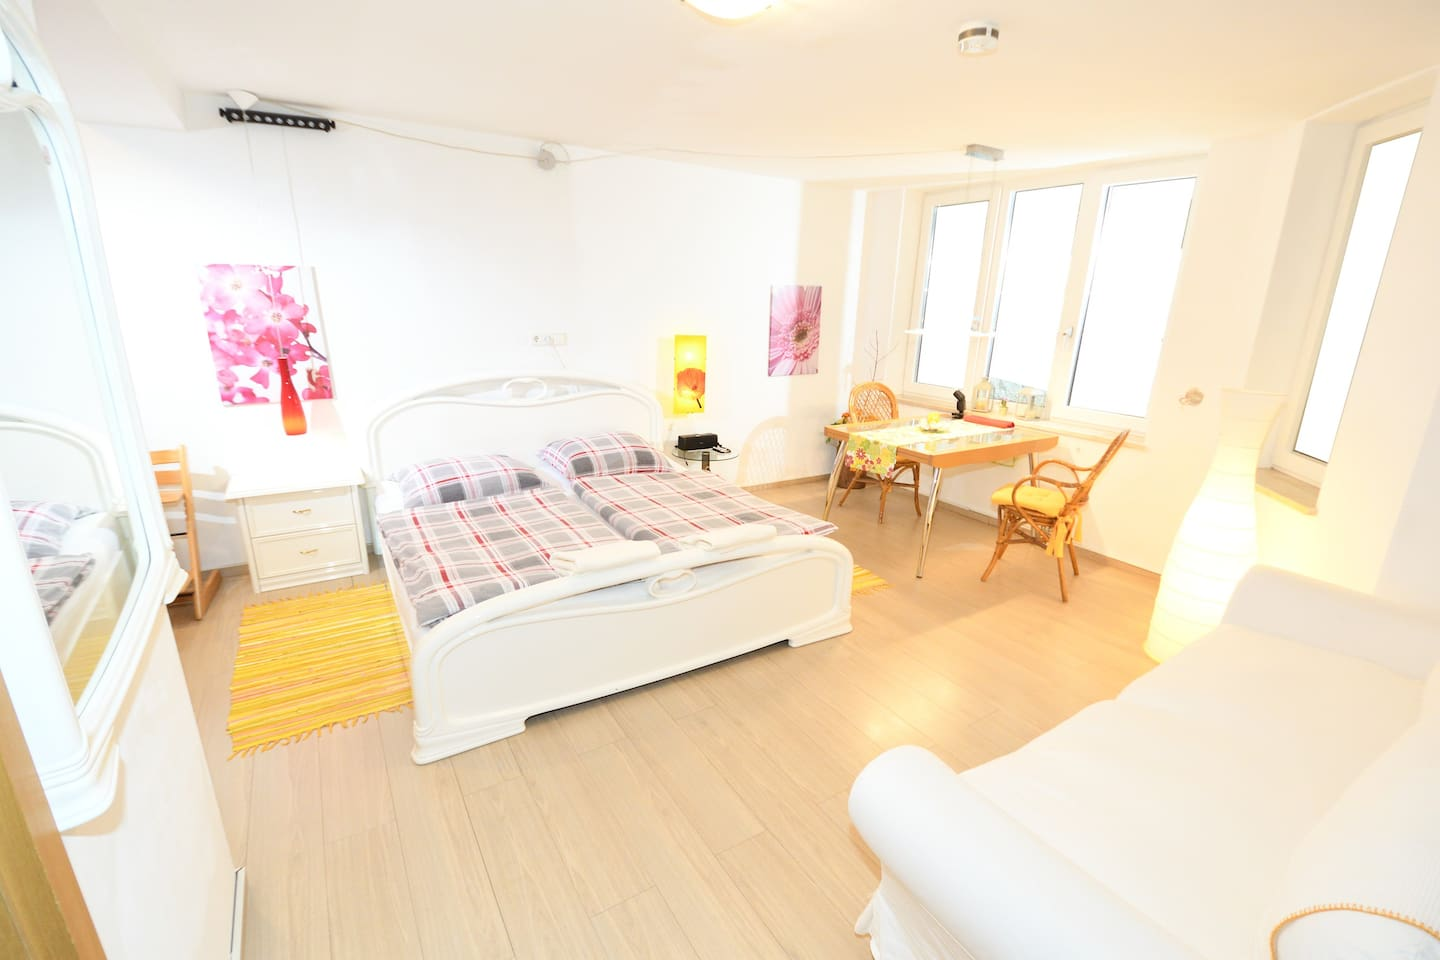 Helles Souterrainzimmer mit Doppelbett, Tisch und Sofa /  / Bright basement room with double bed, table and sofa (2019)